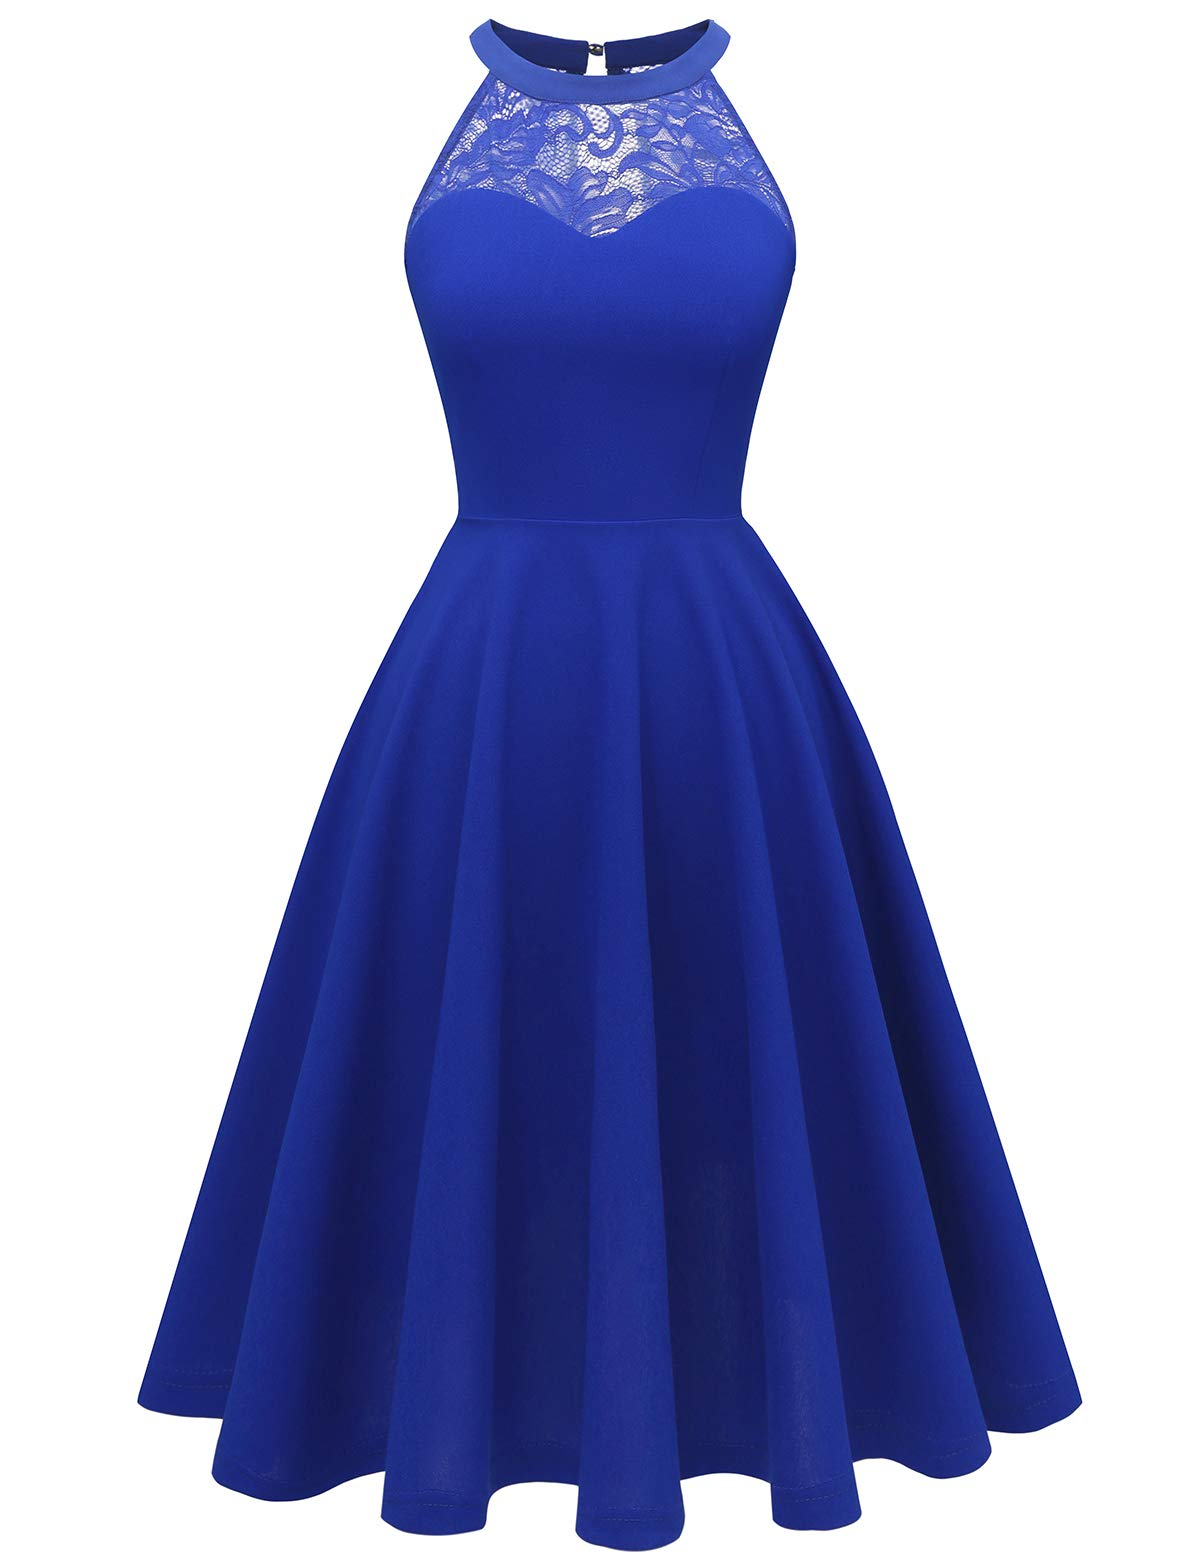 Available at Amazon: Bbonlinedress Women's Halter Lace Bridesmaid Dress Short Prom Party Cocktail Swing Dress